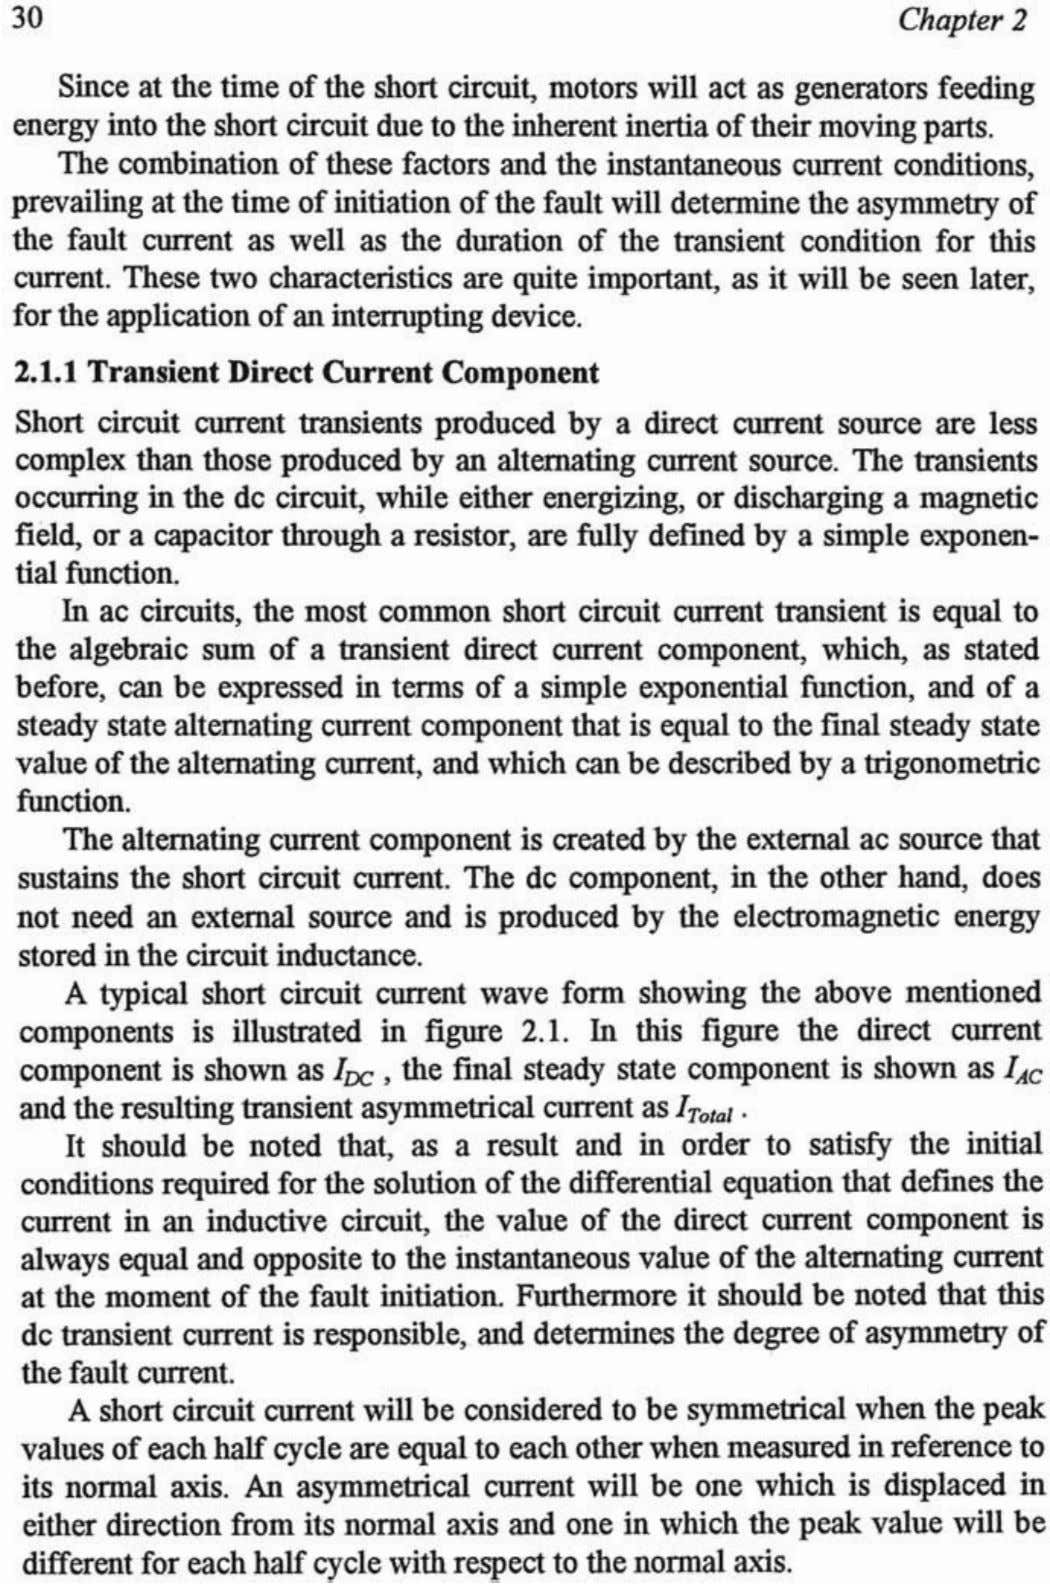 2.1.1 Transient Direct Current Component Short circuit current transients produced by a direct current source